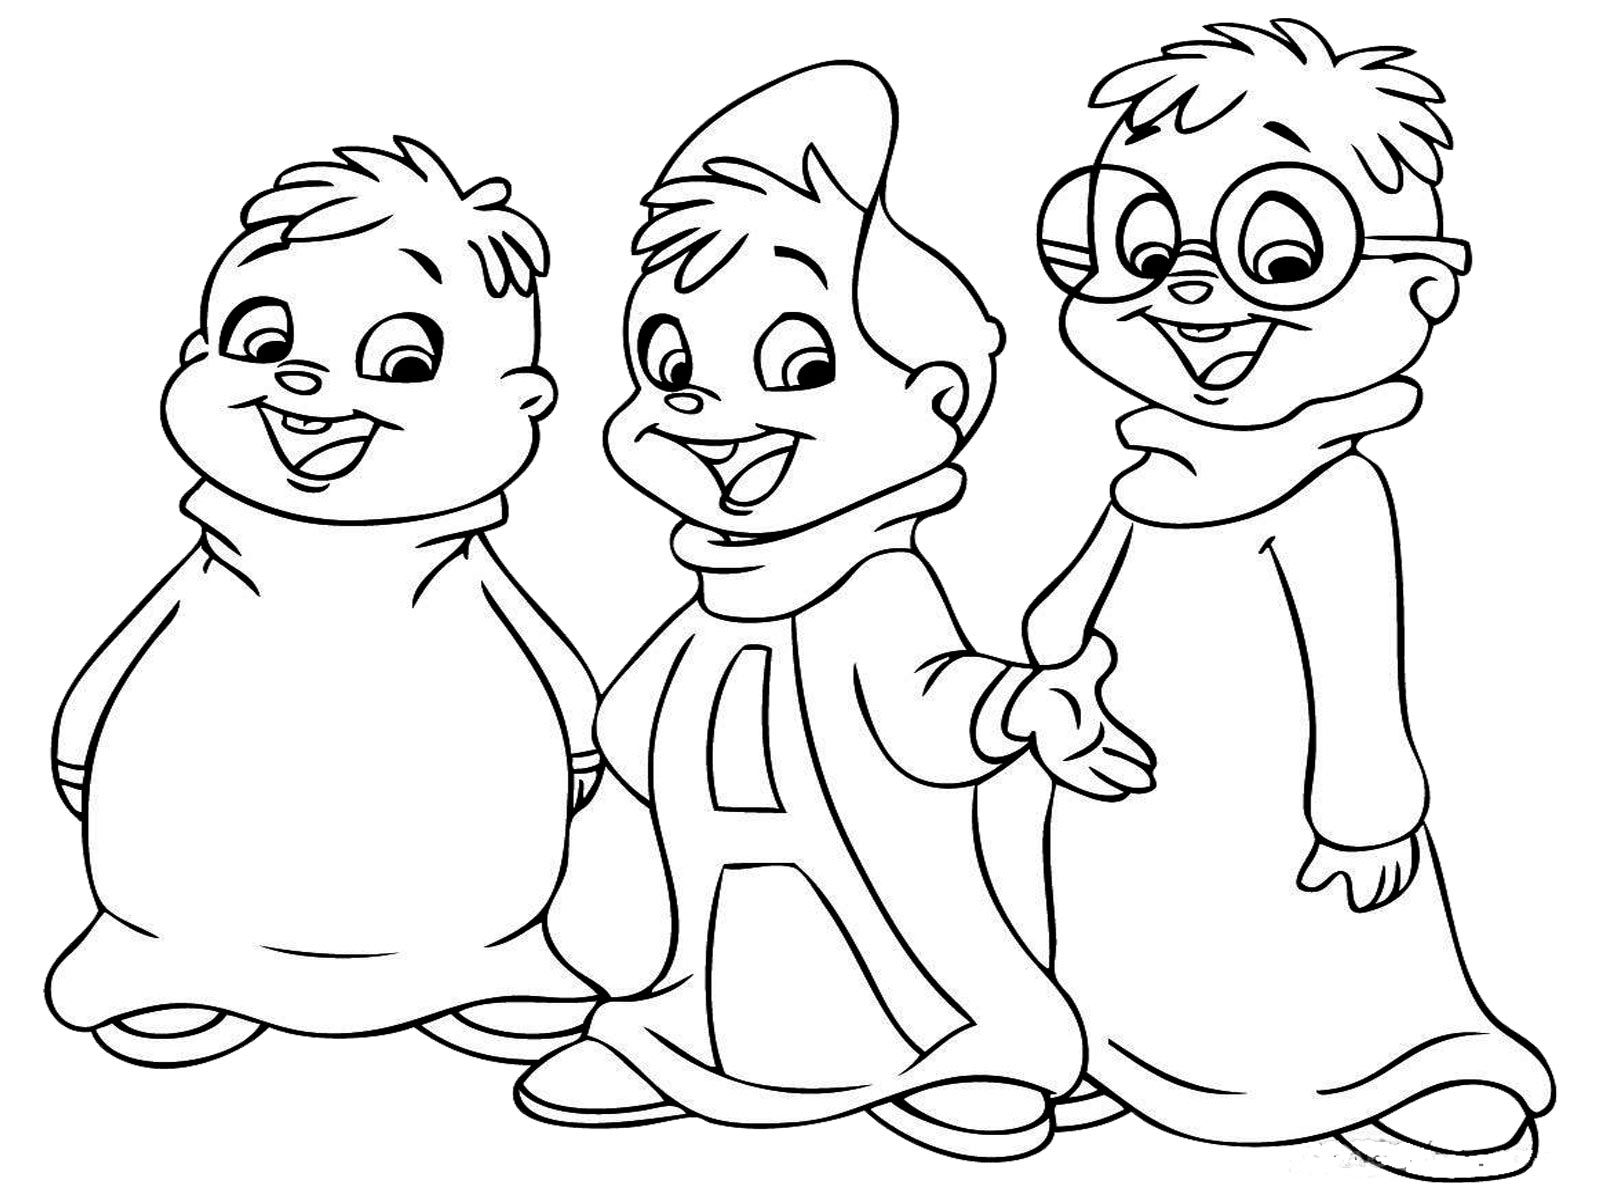 printable coloring pages for boys alvin and the chipmunks coloring pages realistic coloring pages - Kids Colouring Pages To Print